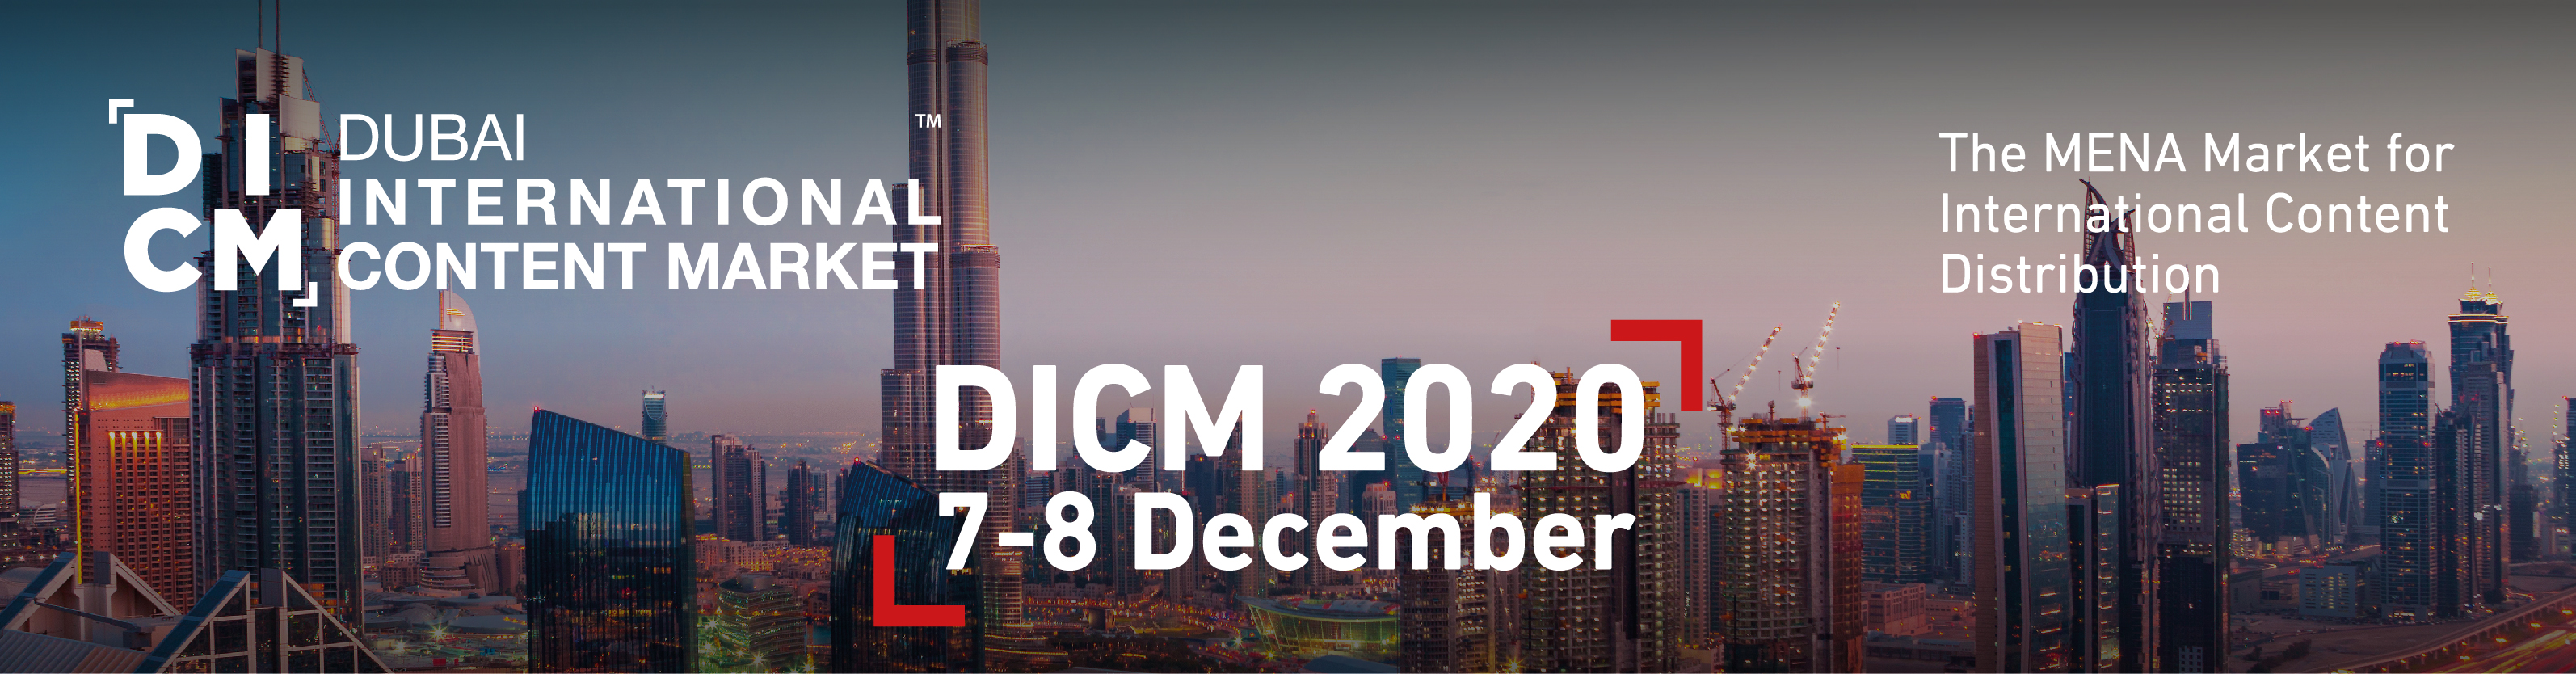 Dubai International Content Market 2019